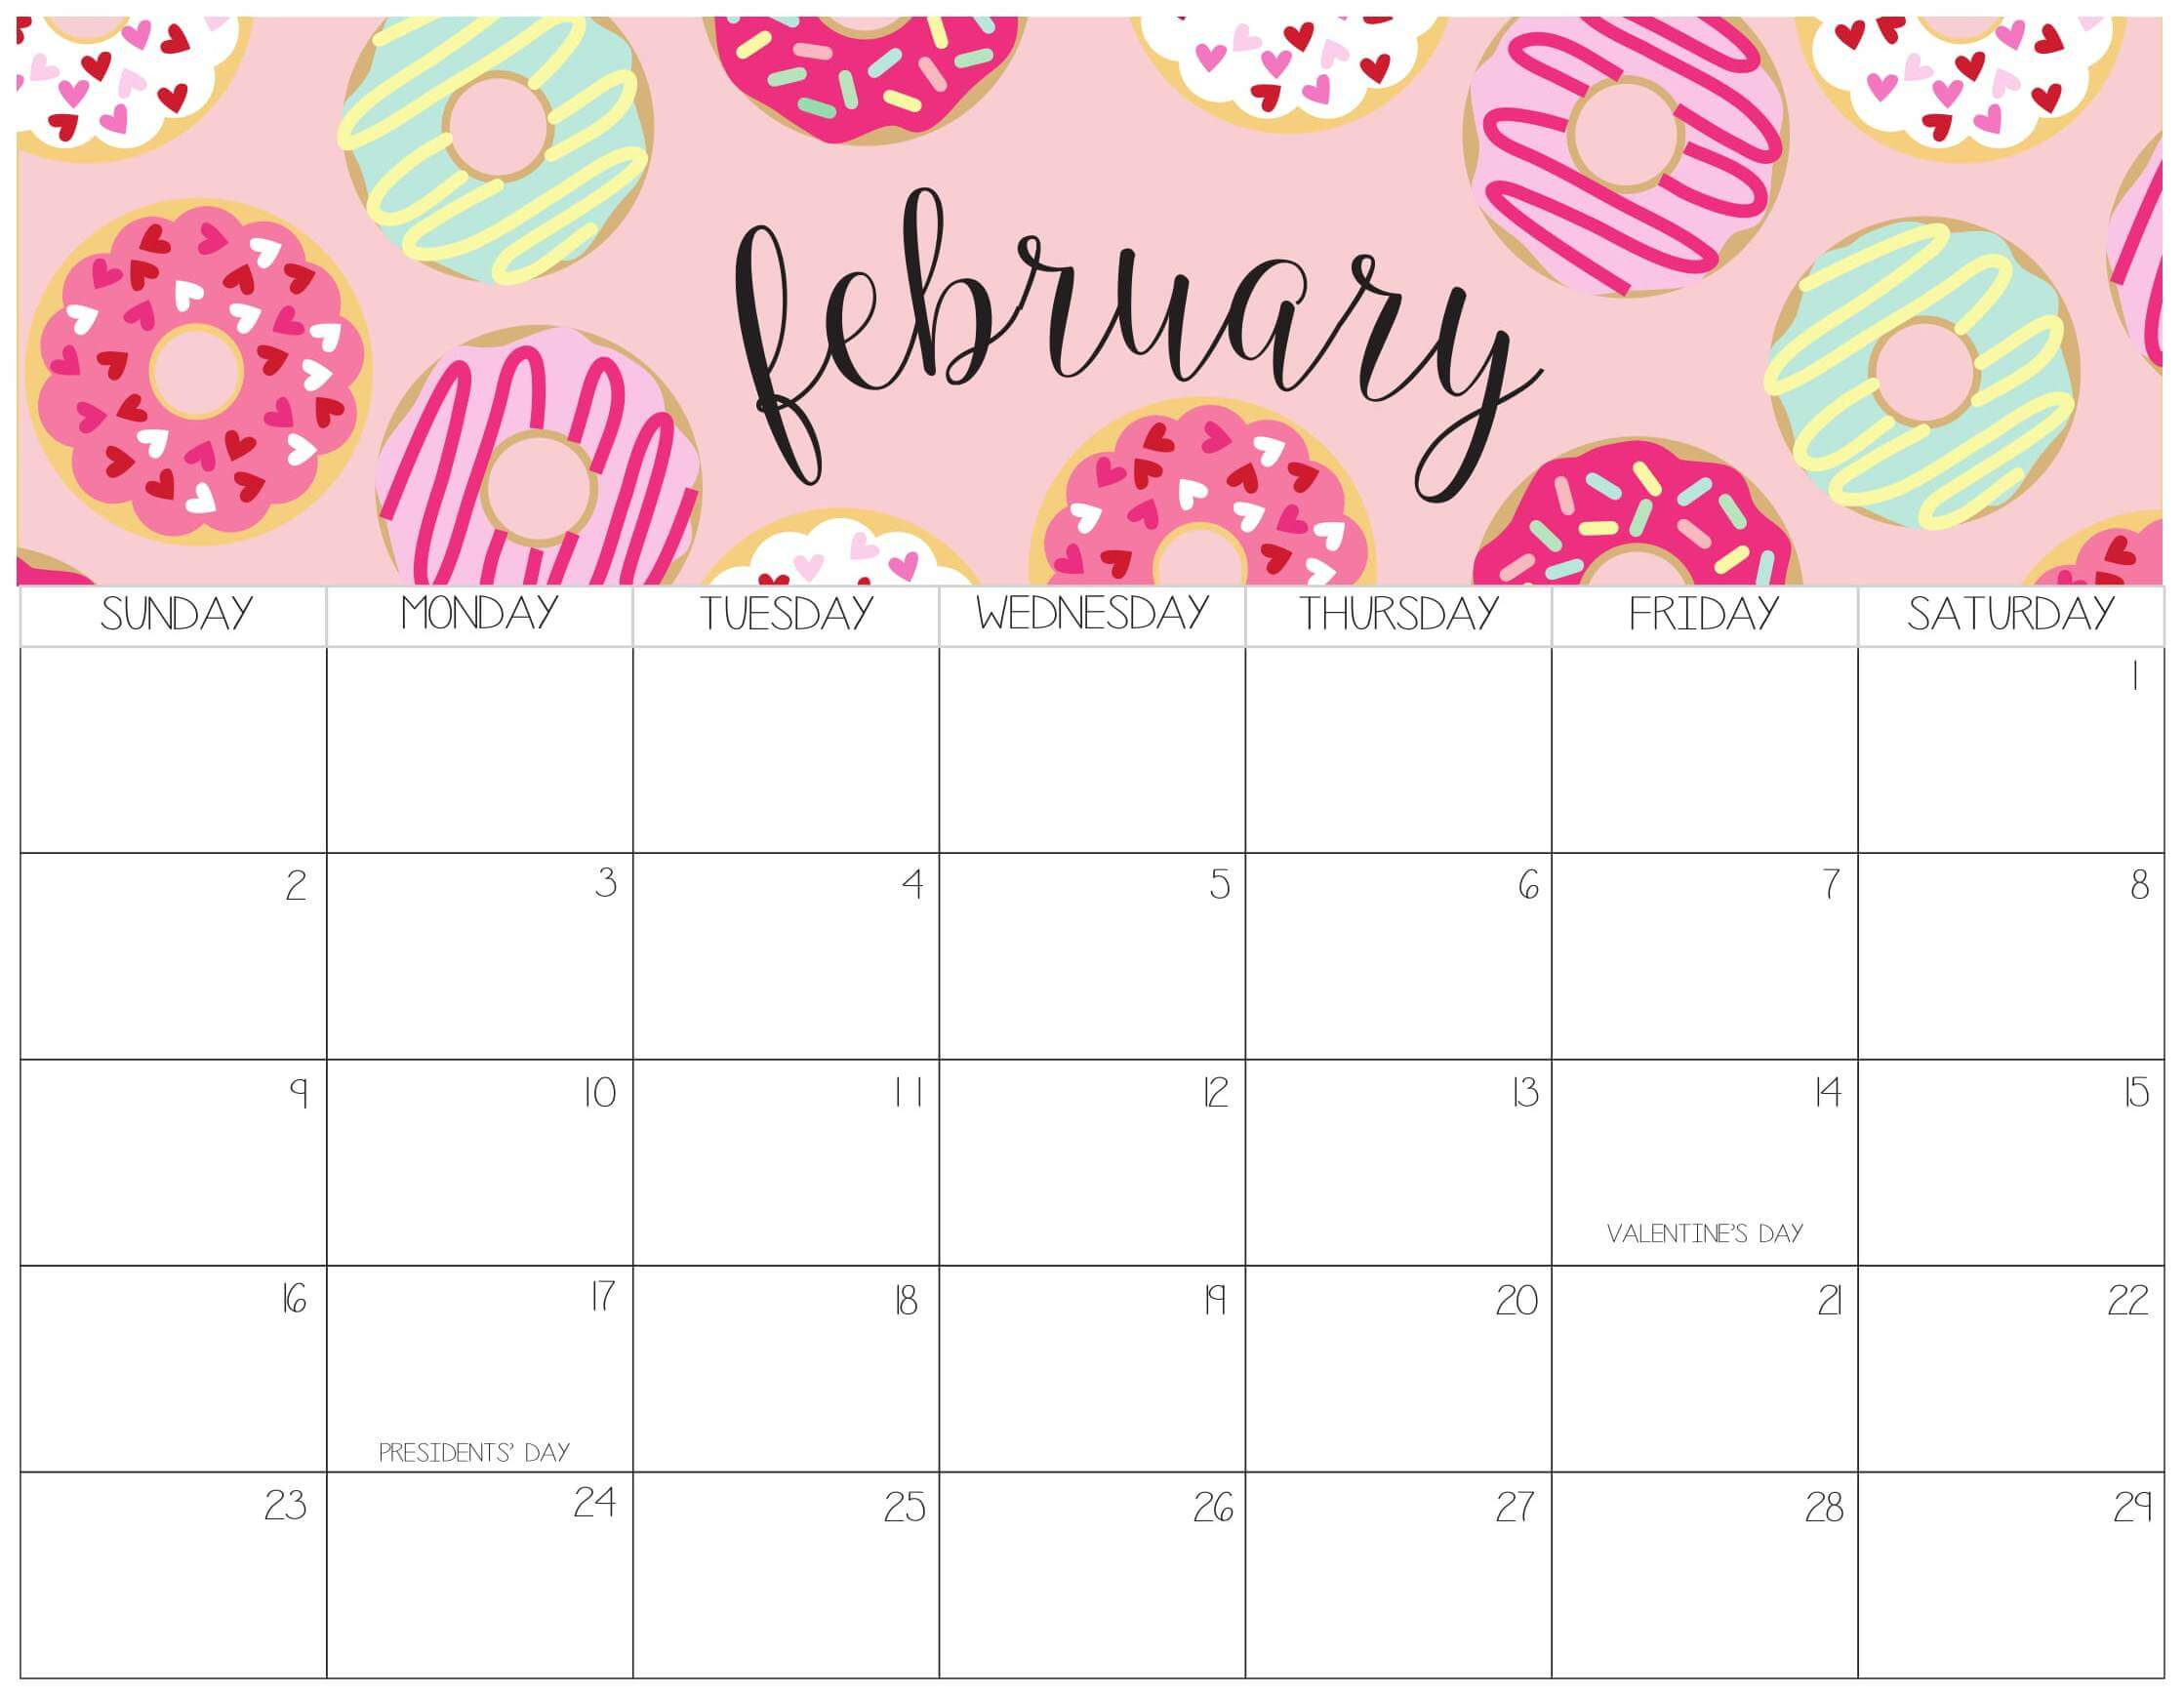 Cute February 2020 Calendar With Notes Printable - Set Your